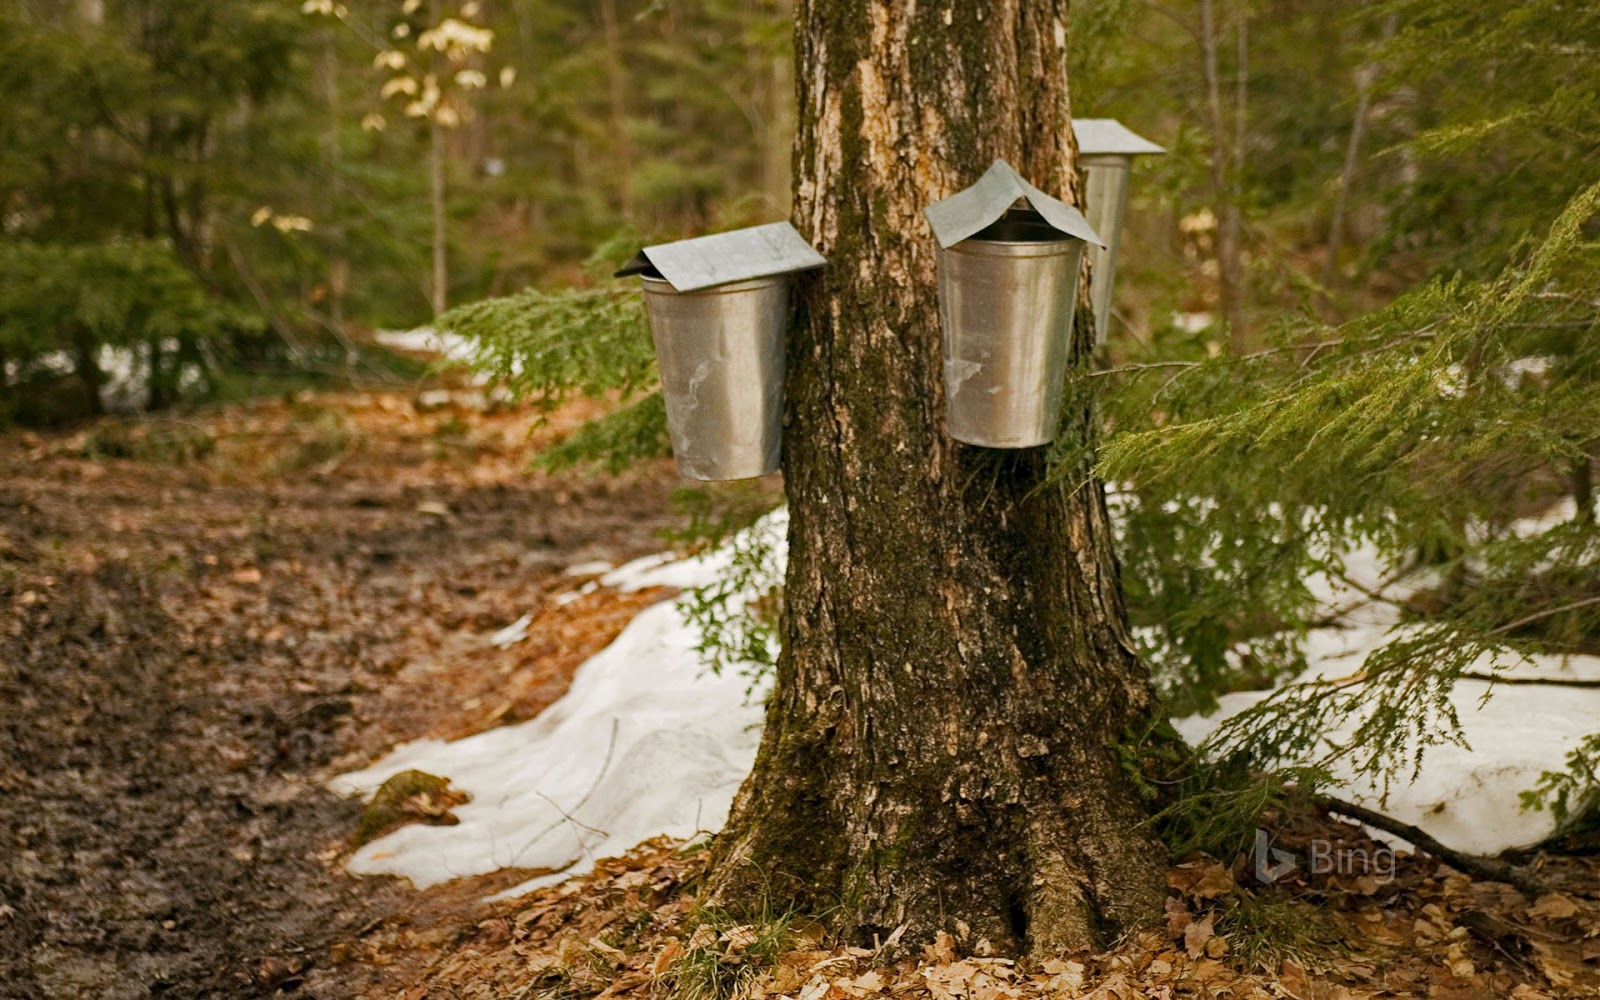 Sap-collecting buckets in Brome-Missisquoi, Quebec © Roderick Chen/SuperStock